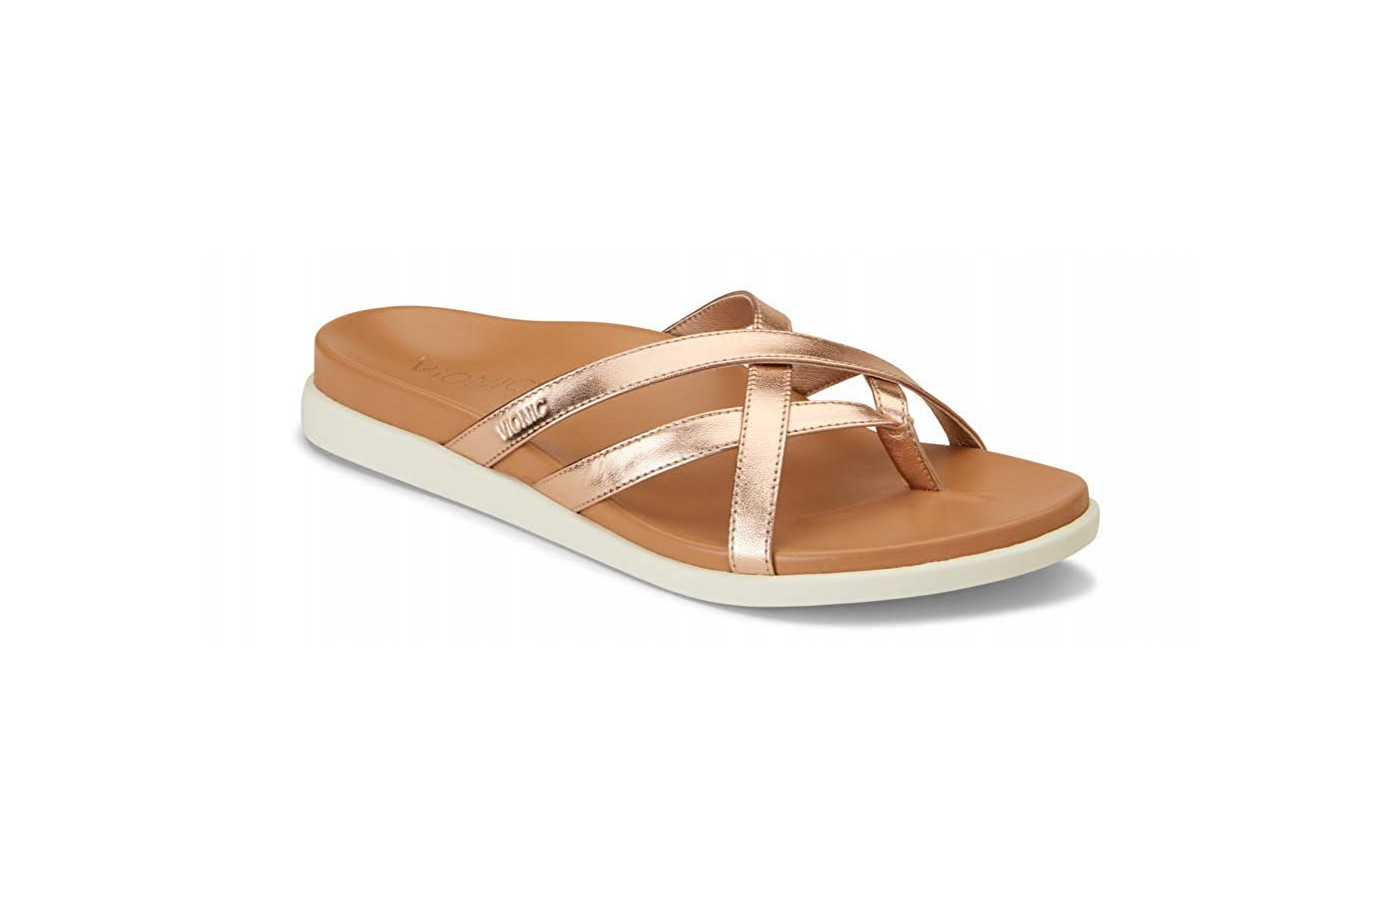 Vionic Palm Daisy sandal right side